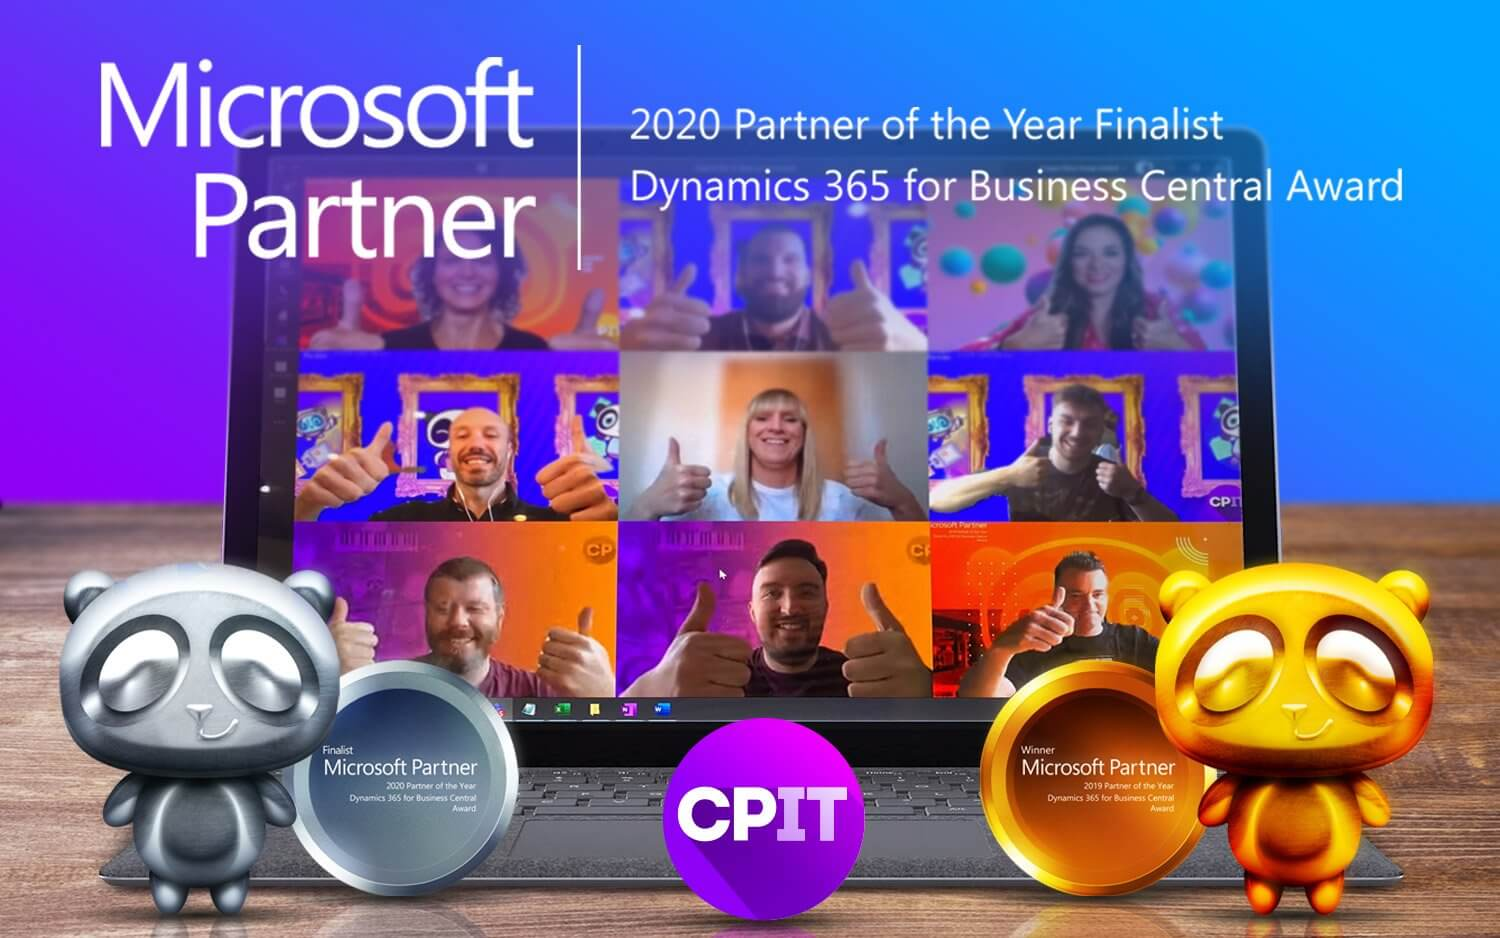 CPIT AWARDED FINALIST IN THE 2020 MICROSOFT DYNAMICS 365 BUSINESS CENTRAL PARTNER OF THE YEAR AWARDS